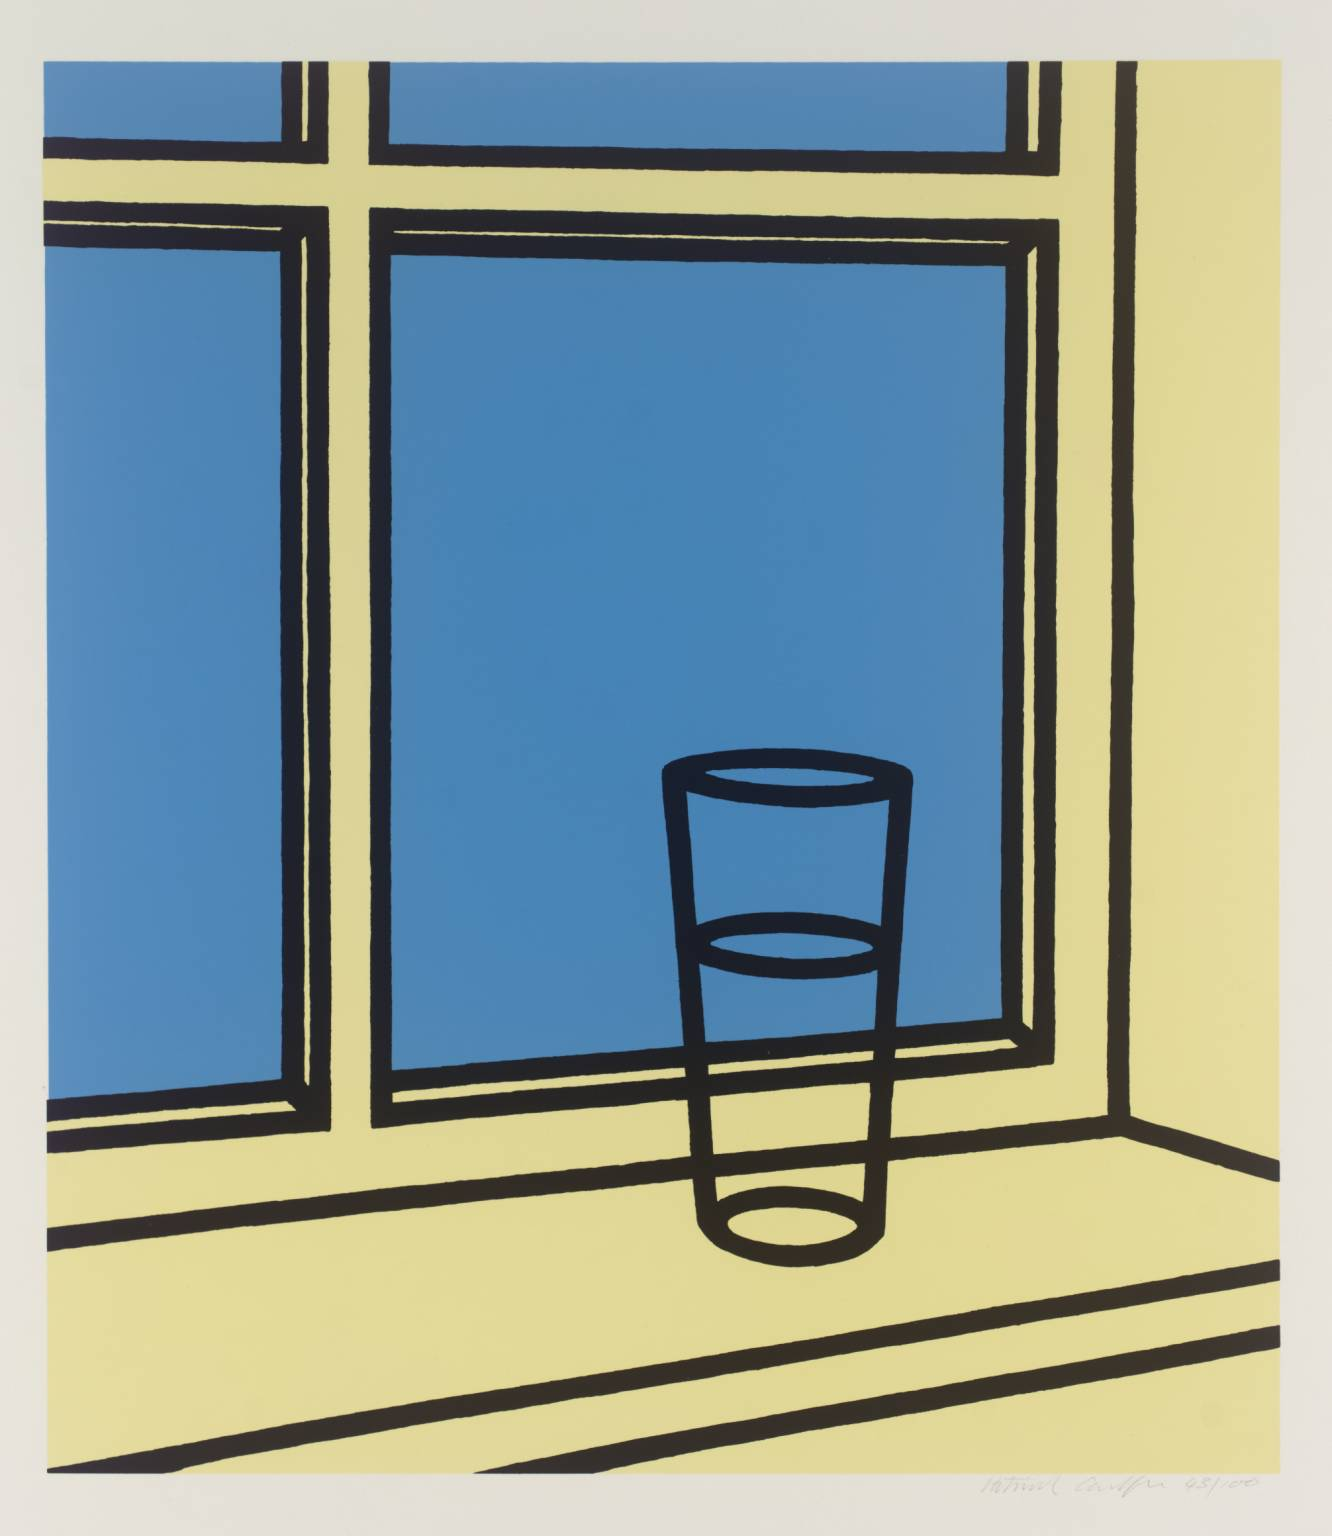 ART & ARTISTS: Patrick Caulfield - part 4